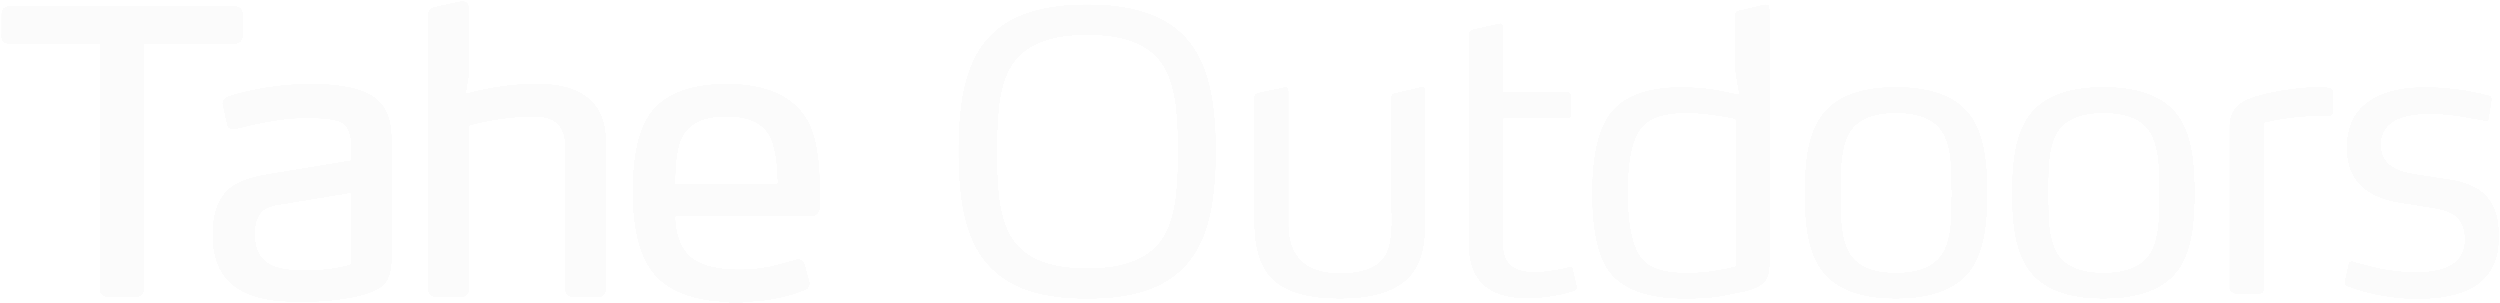 Tahe_Outdoors_Logo_white.png